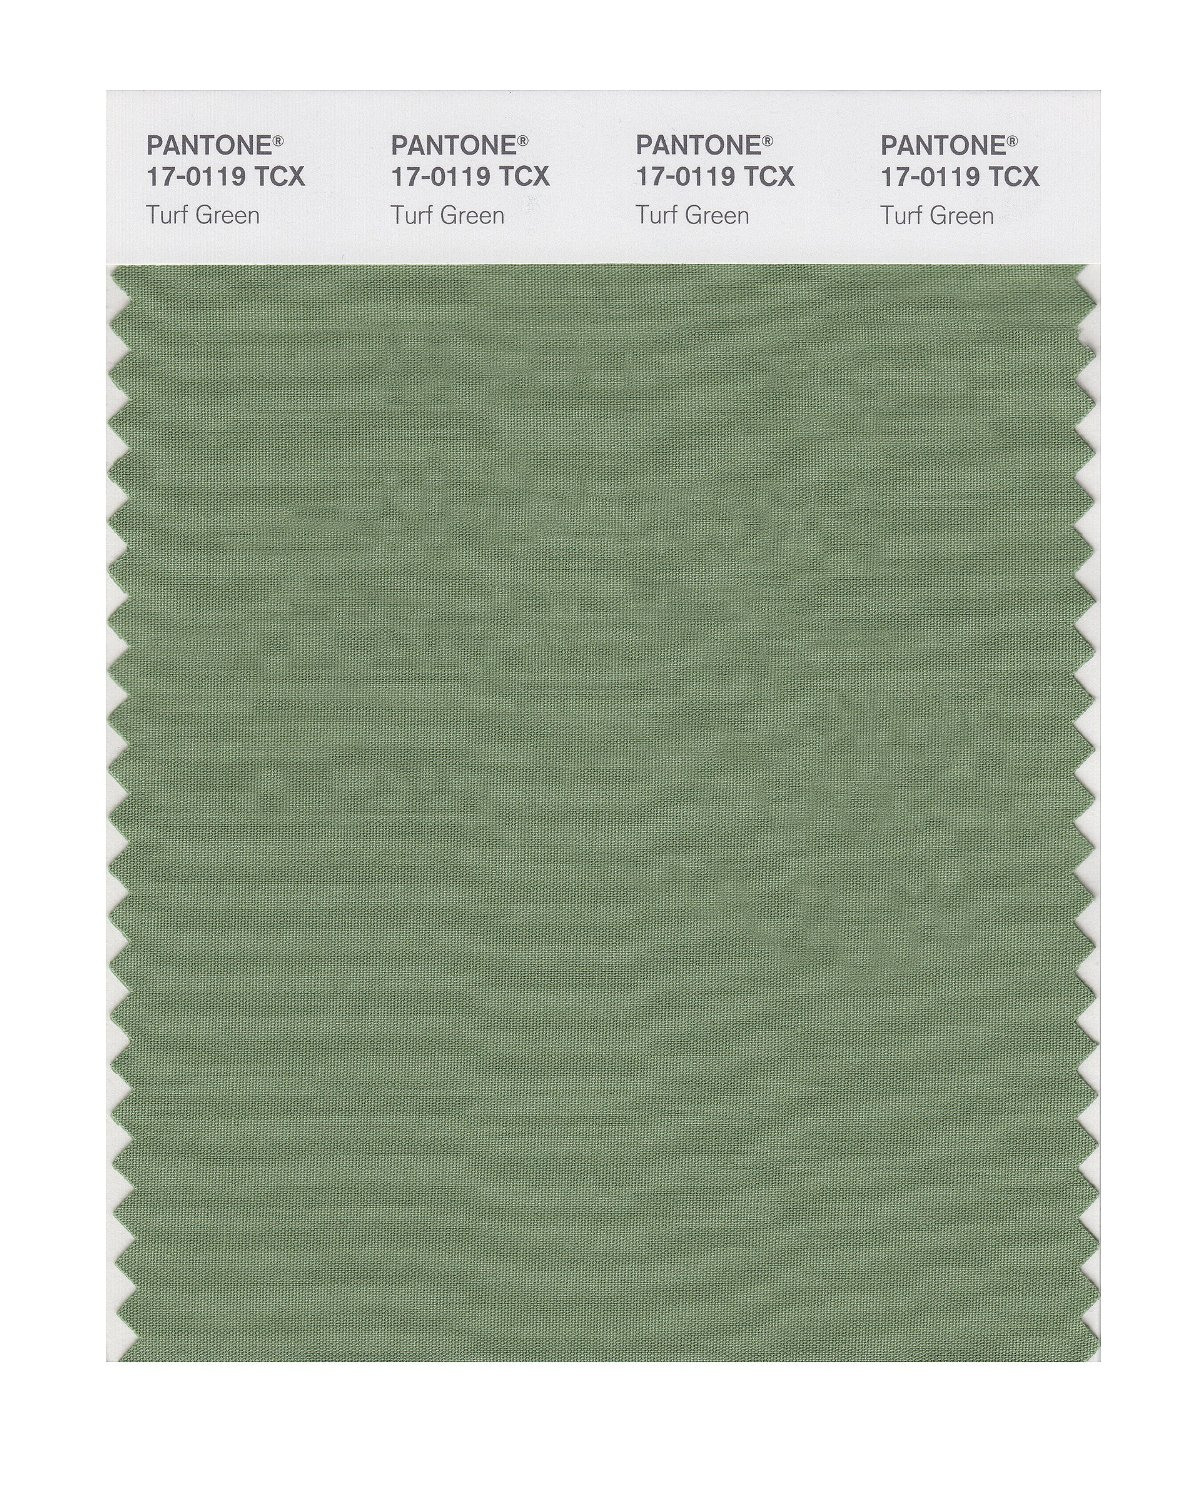 Pantone Smart Swatch 17-0119 Turf Green